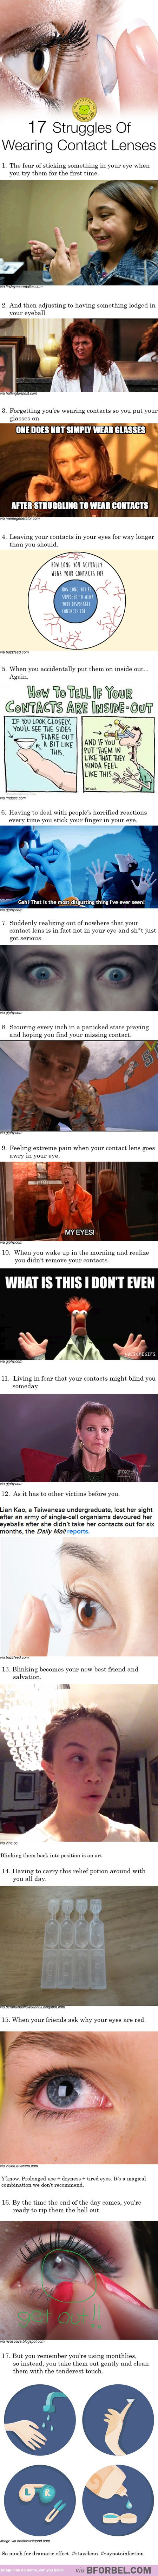 Or when you drop your contact and look around you but its in he other side of the room not even close to where you were